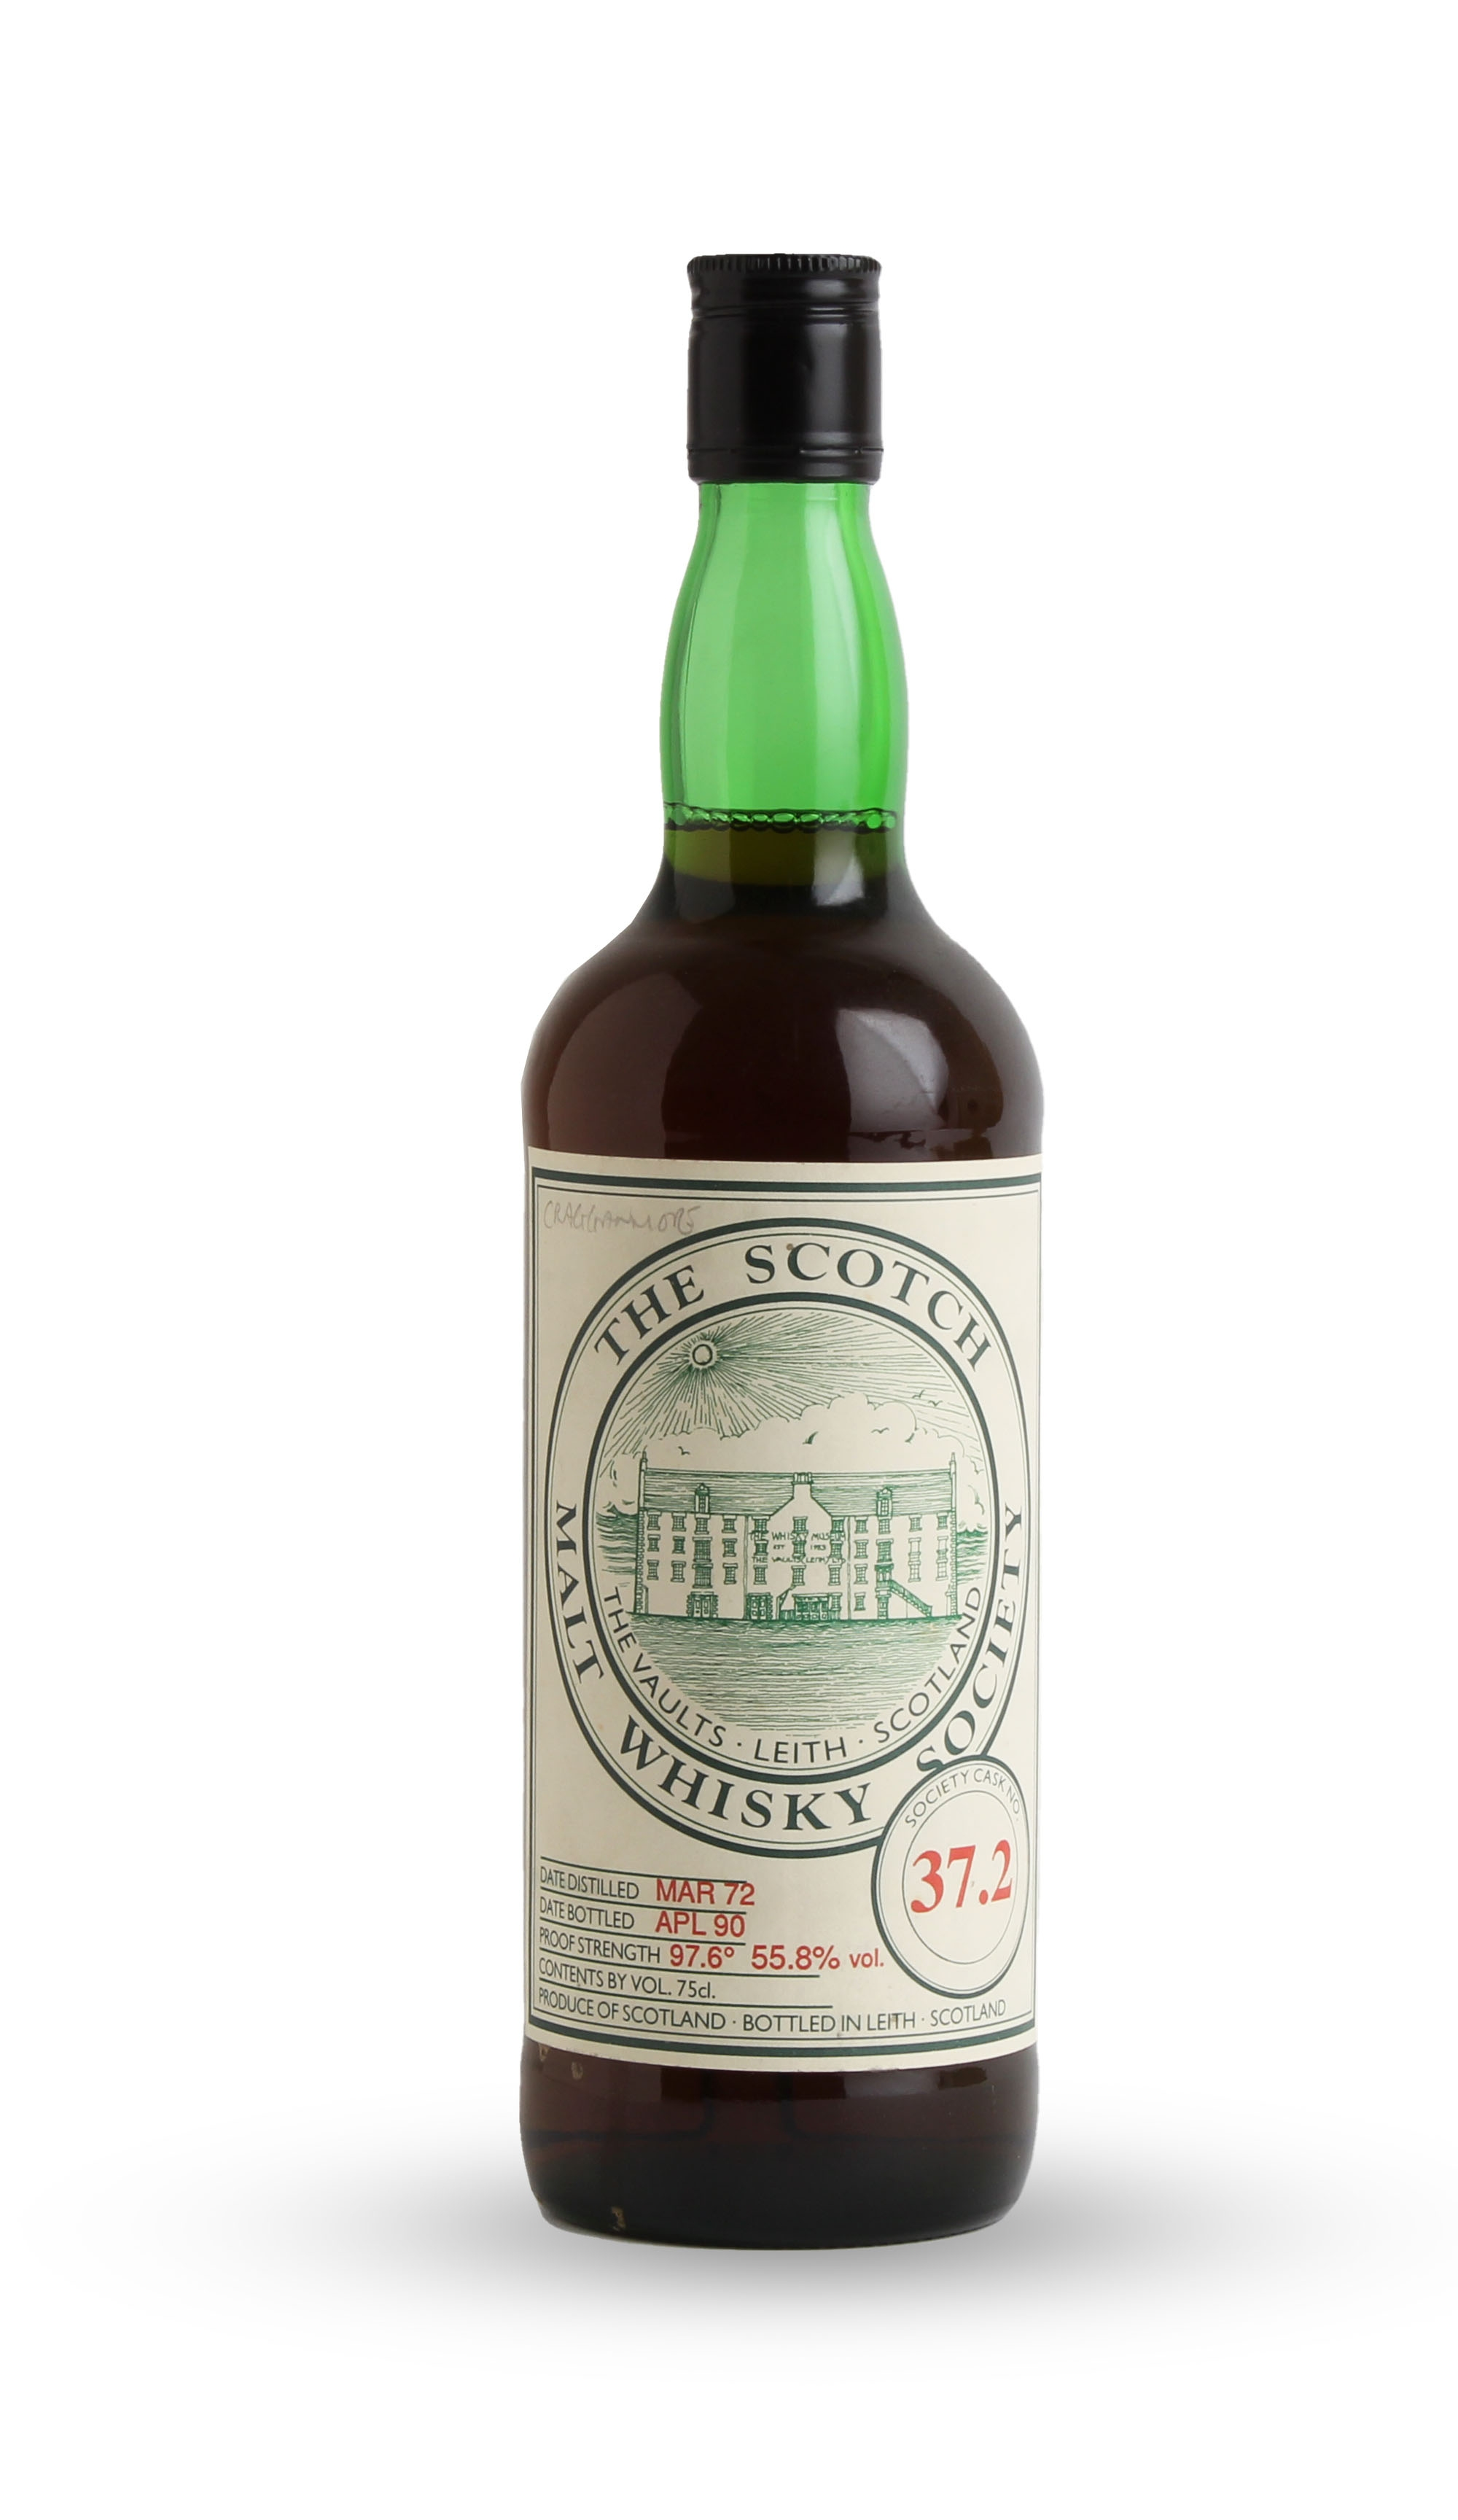 Cragganmore-1972 (SMWS 37.2)